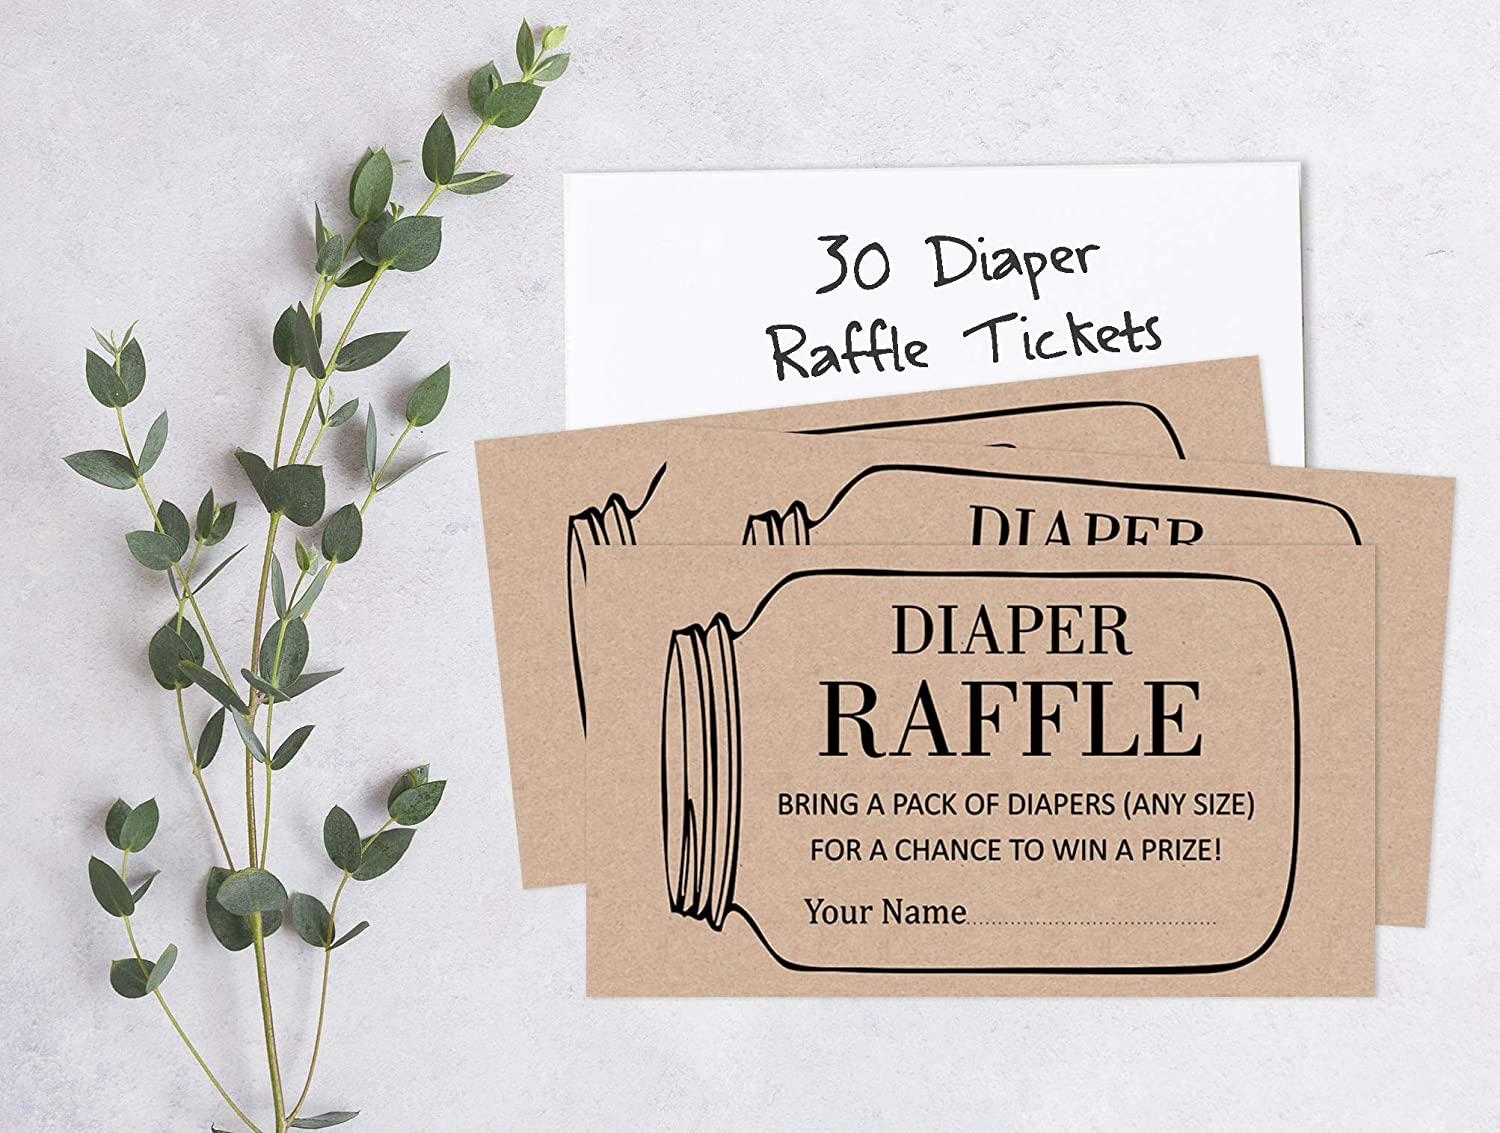 Inkdotpot 30/Baby Shower/Diaper Raffle Ticket Lottery Insert Cards Supplies Games for Baby Shower Party Gender Neutral Bring A Pack of Rustic Diapers to Win Favors Gifts and Prizes